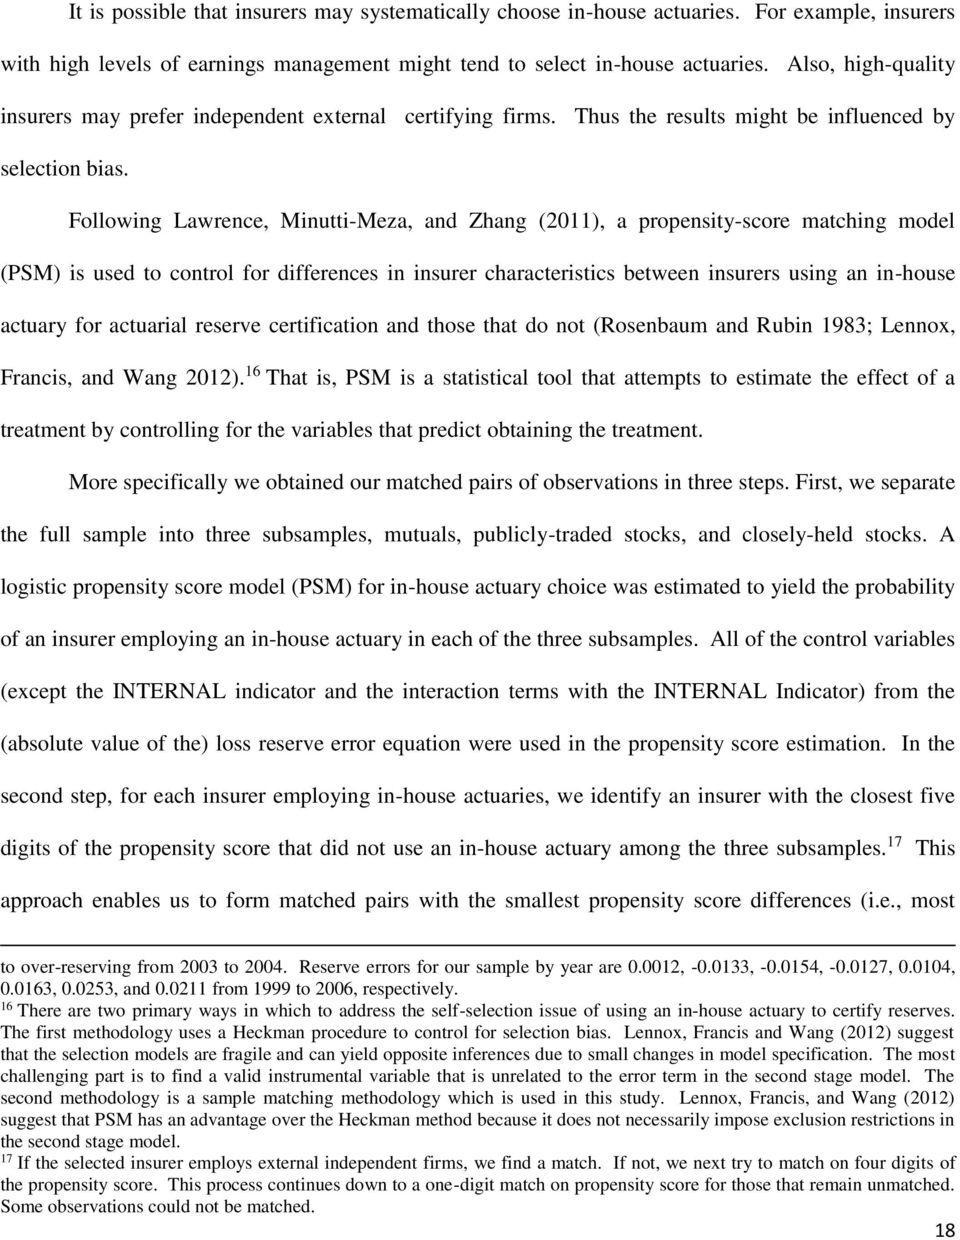 Loss Reserves And In House Actuary Certification Jiang Cheng Mary